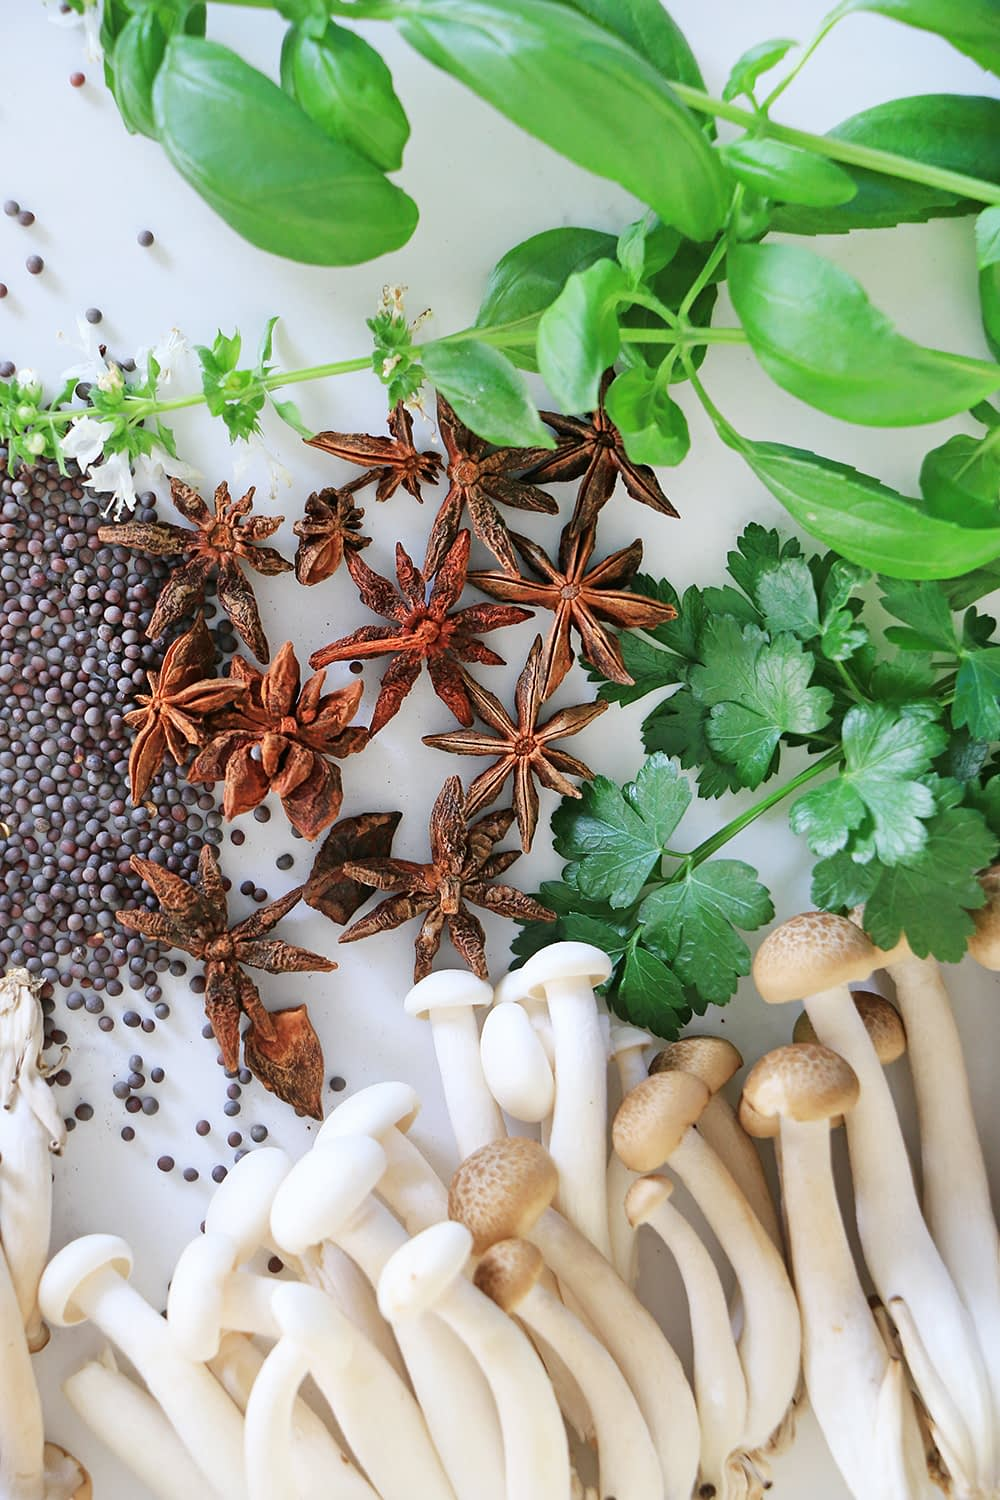 Beech mushrooms spices and herbs